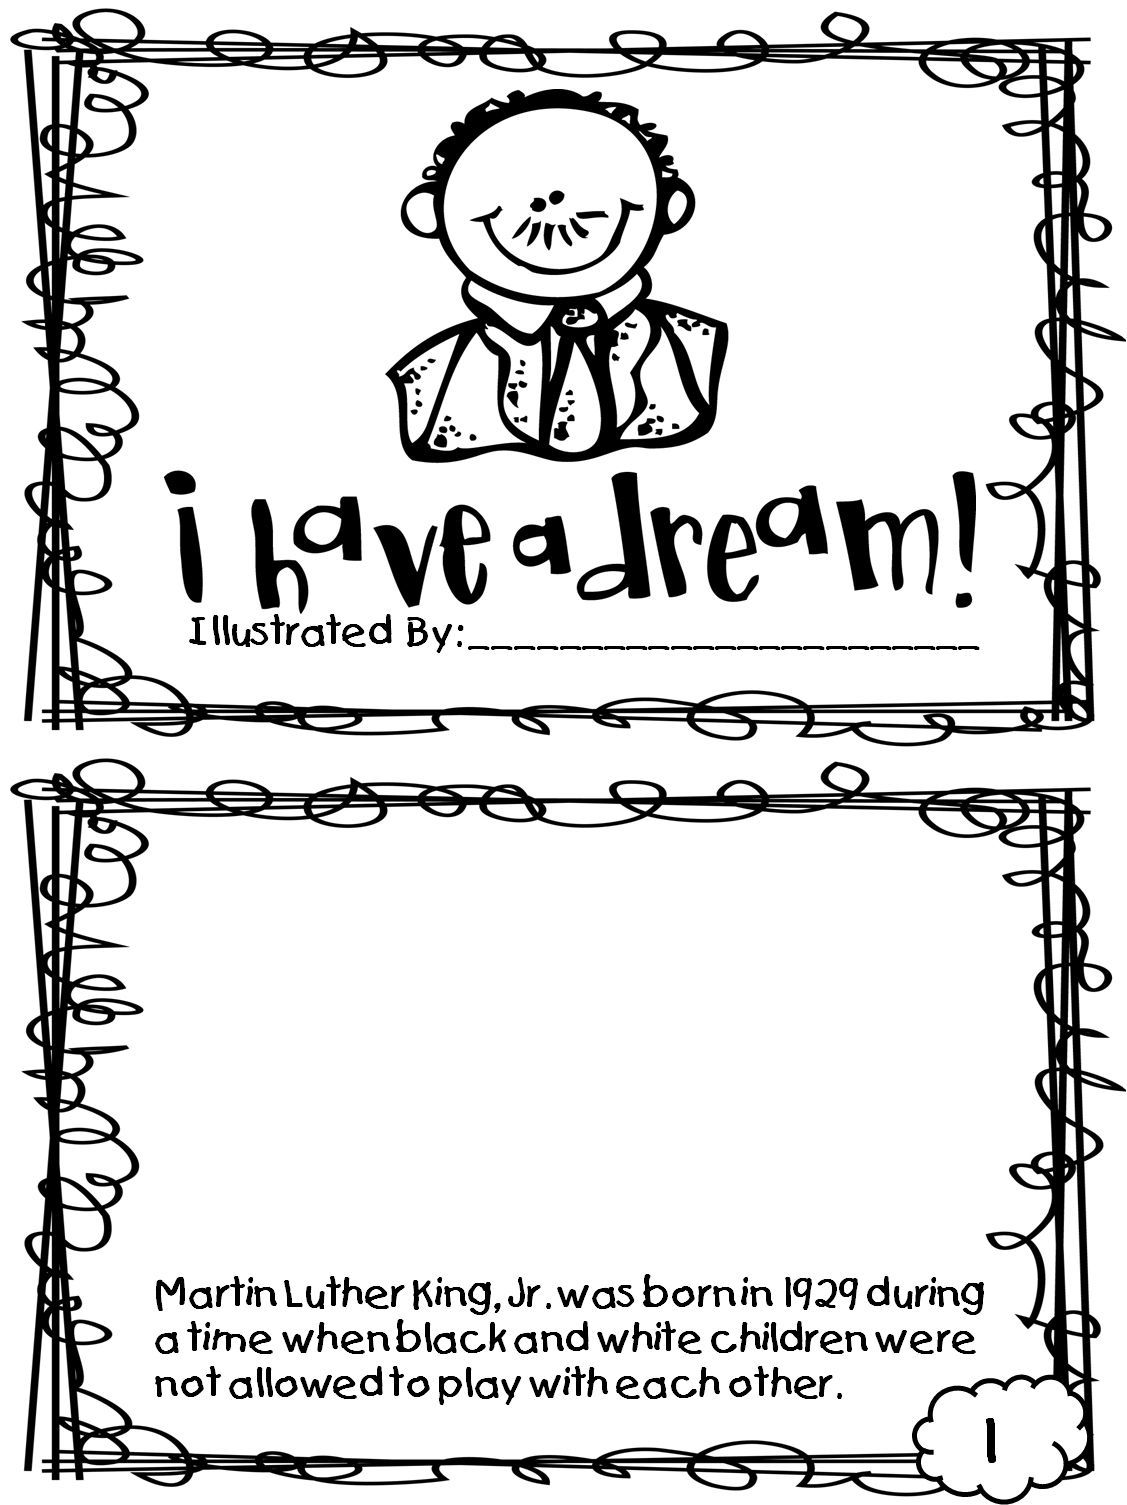 Coloring Pages ~ Fantastic Martin Luther King Jr Coloring Page - Martin Luther King Free Printable Coloring Pages